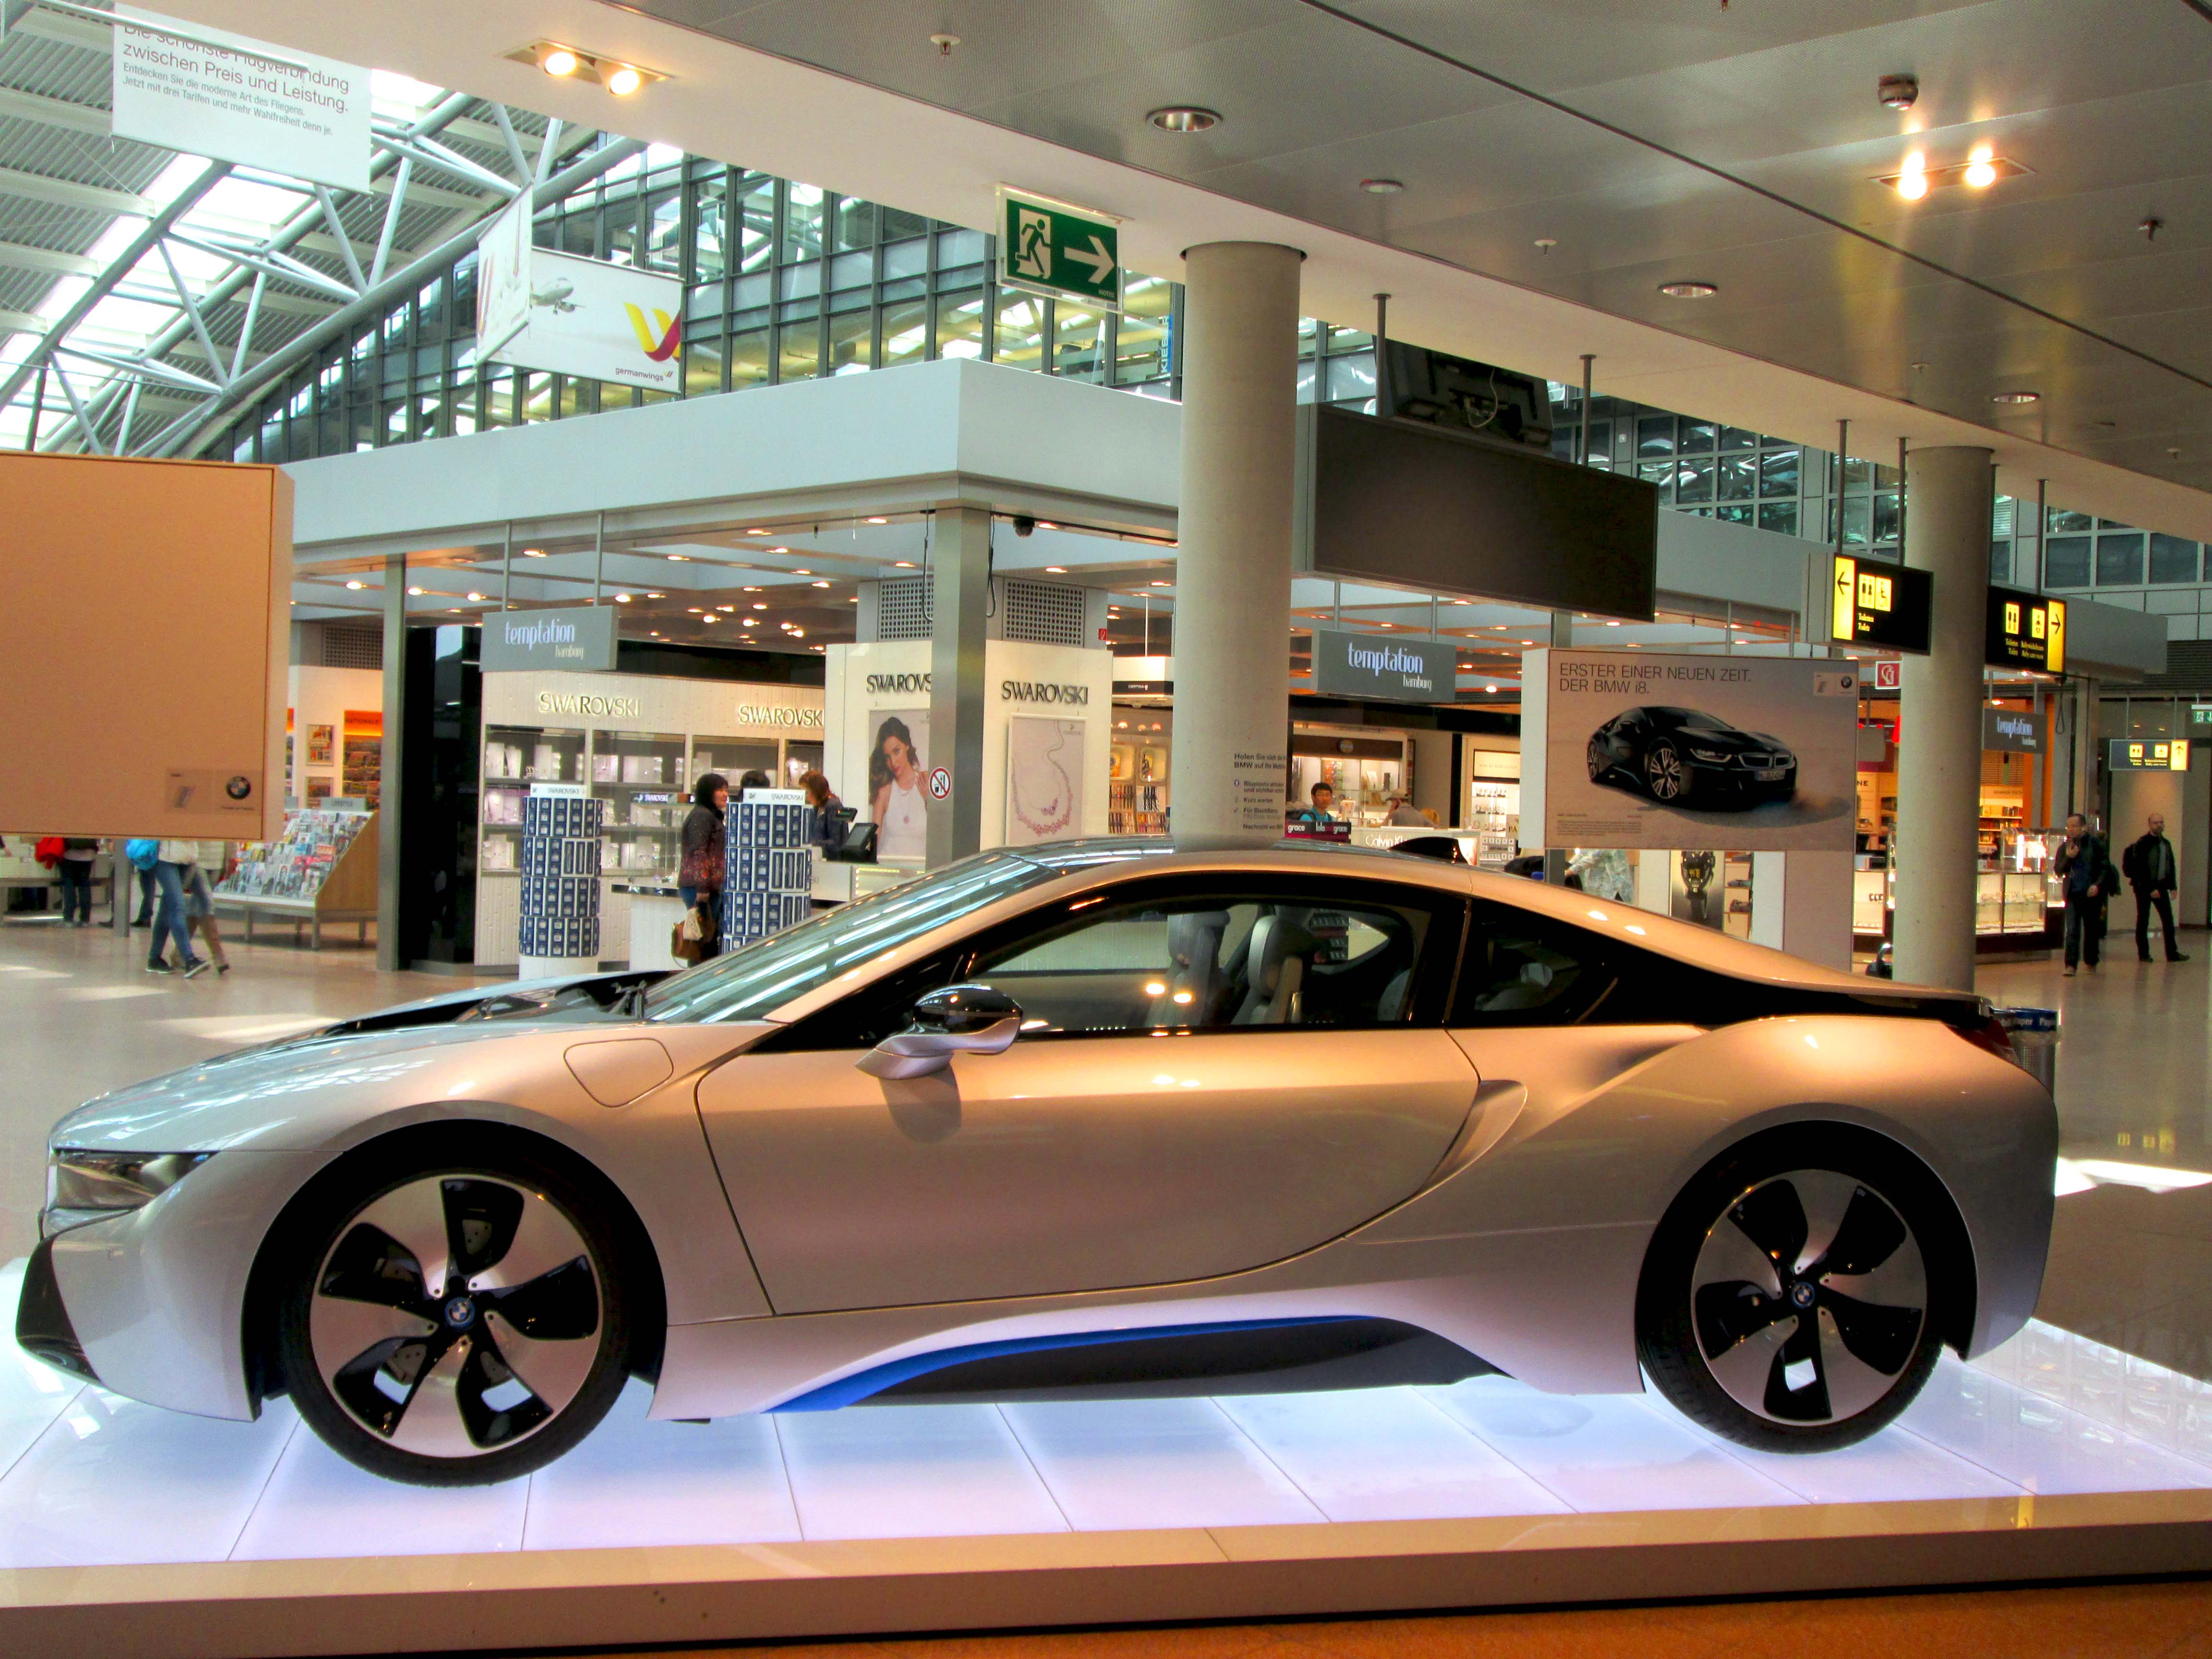 file bmw vision efficient dynamics bmw i8 jpg wikimedia commons. Black Bedroom Furniture Sets. Home Design Ideas